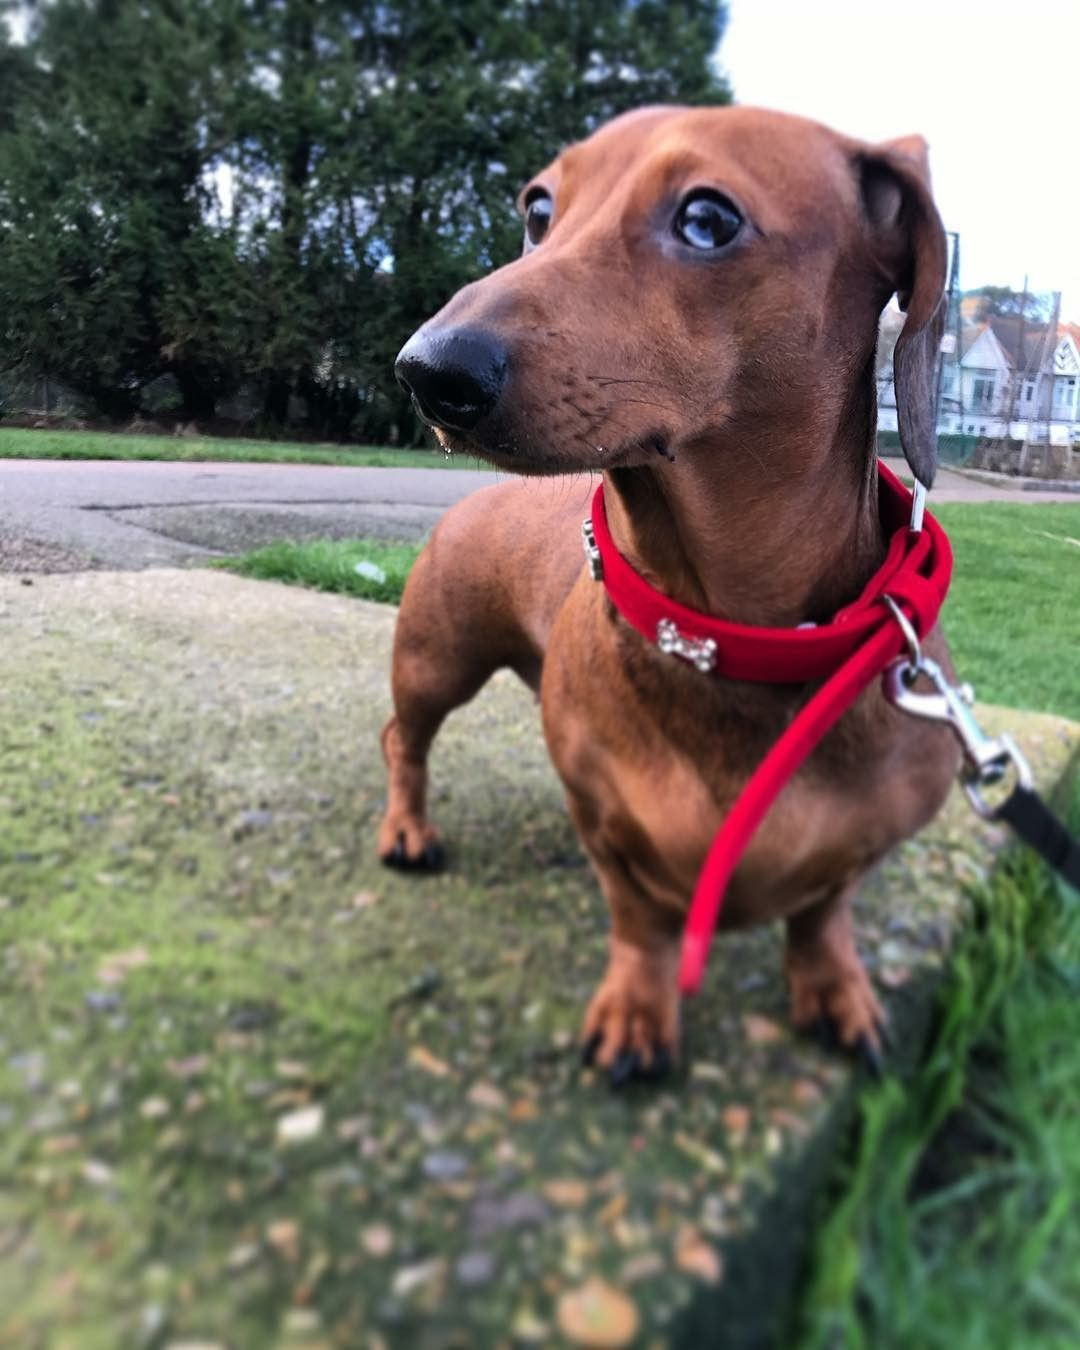 Pin by rebeca lobos on fotografía pinterest dachshunds weiner